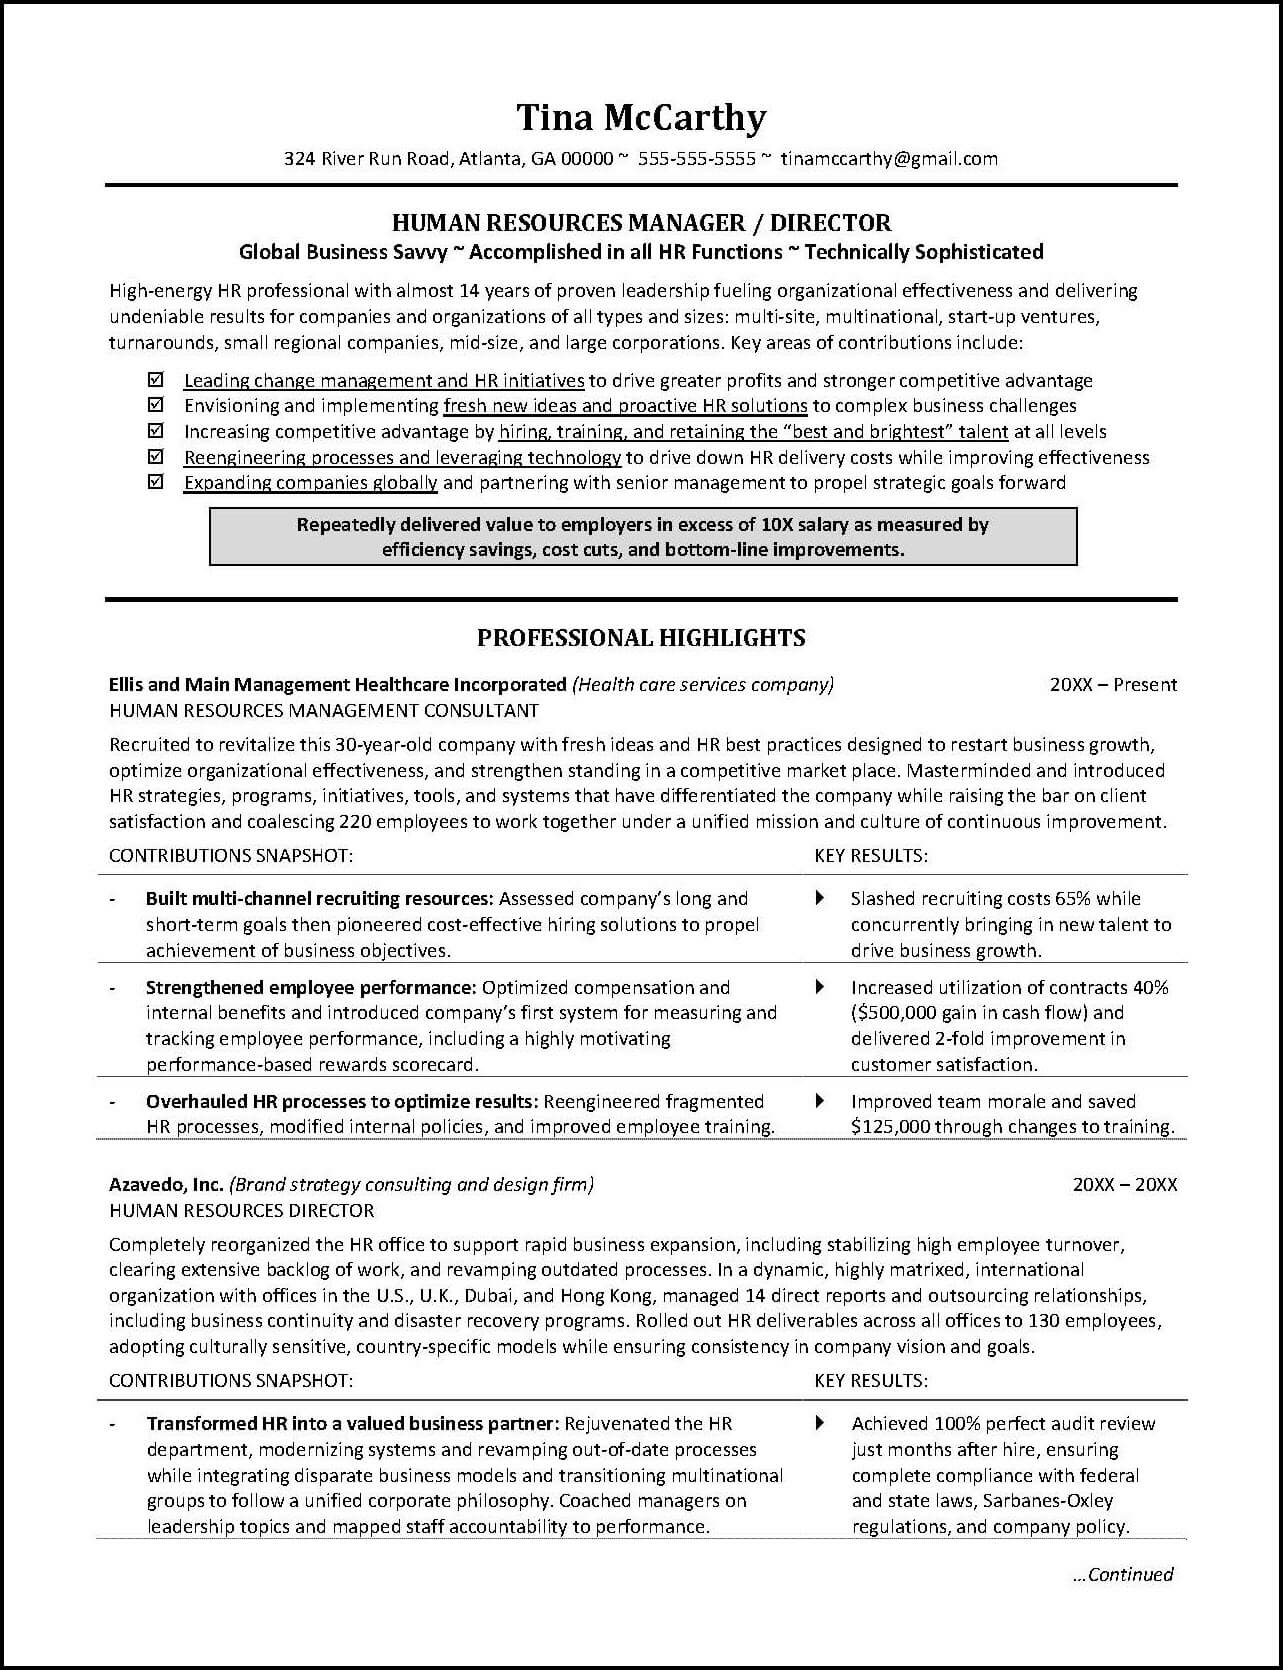 Powerful Human Resources Resume Example – Human Resources Resume Template